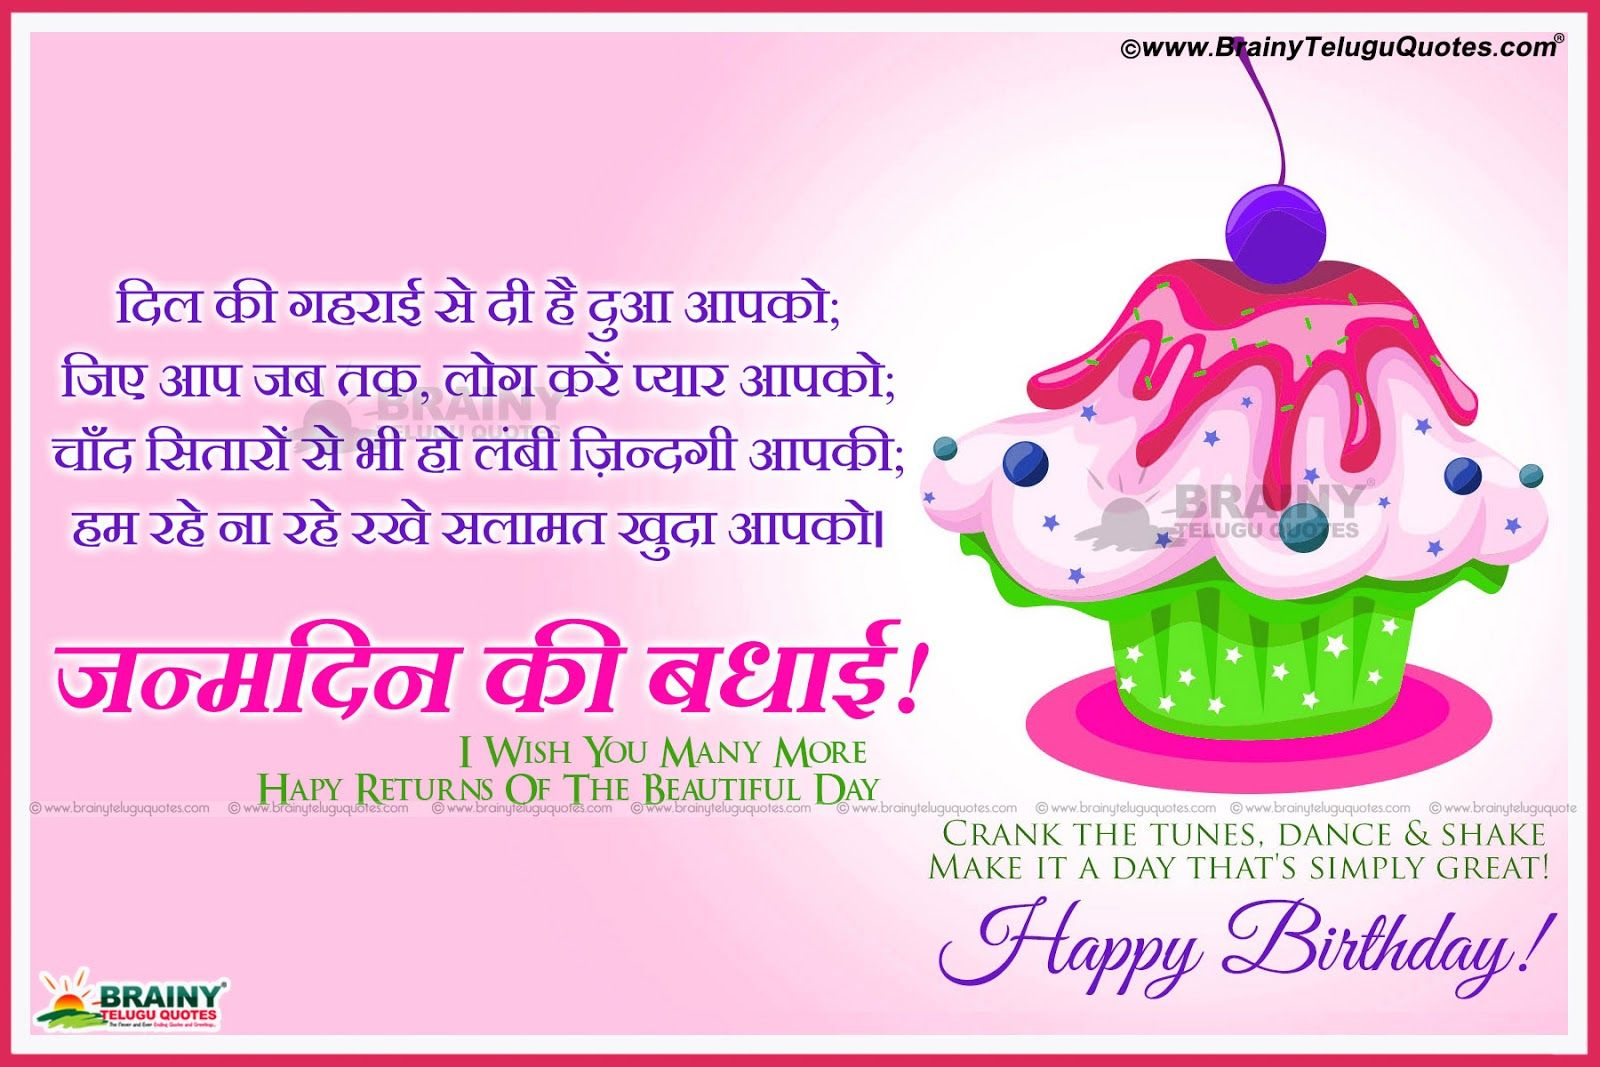 Janmadin Shayri Hindi Birthday Wishes Cards Greetings